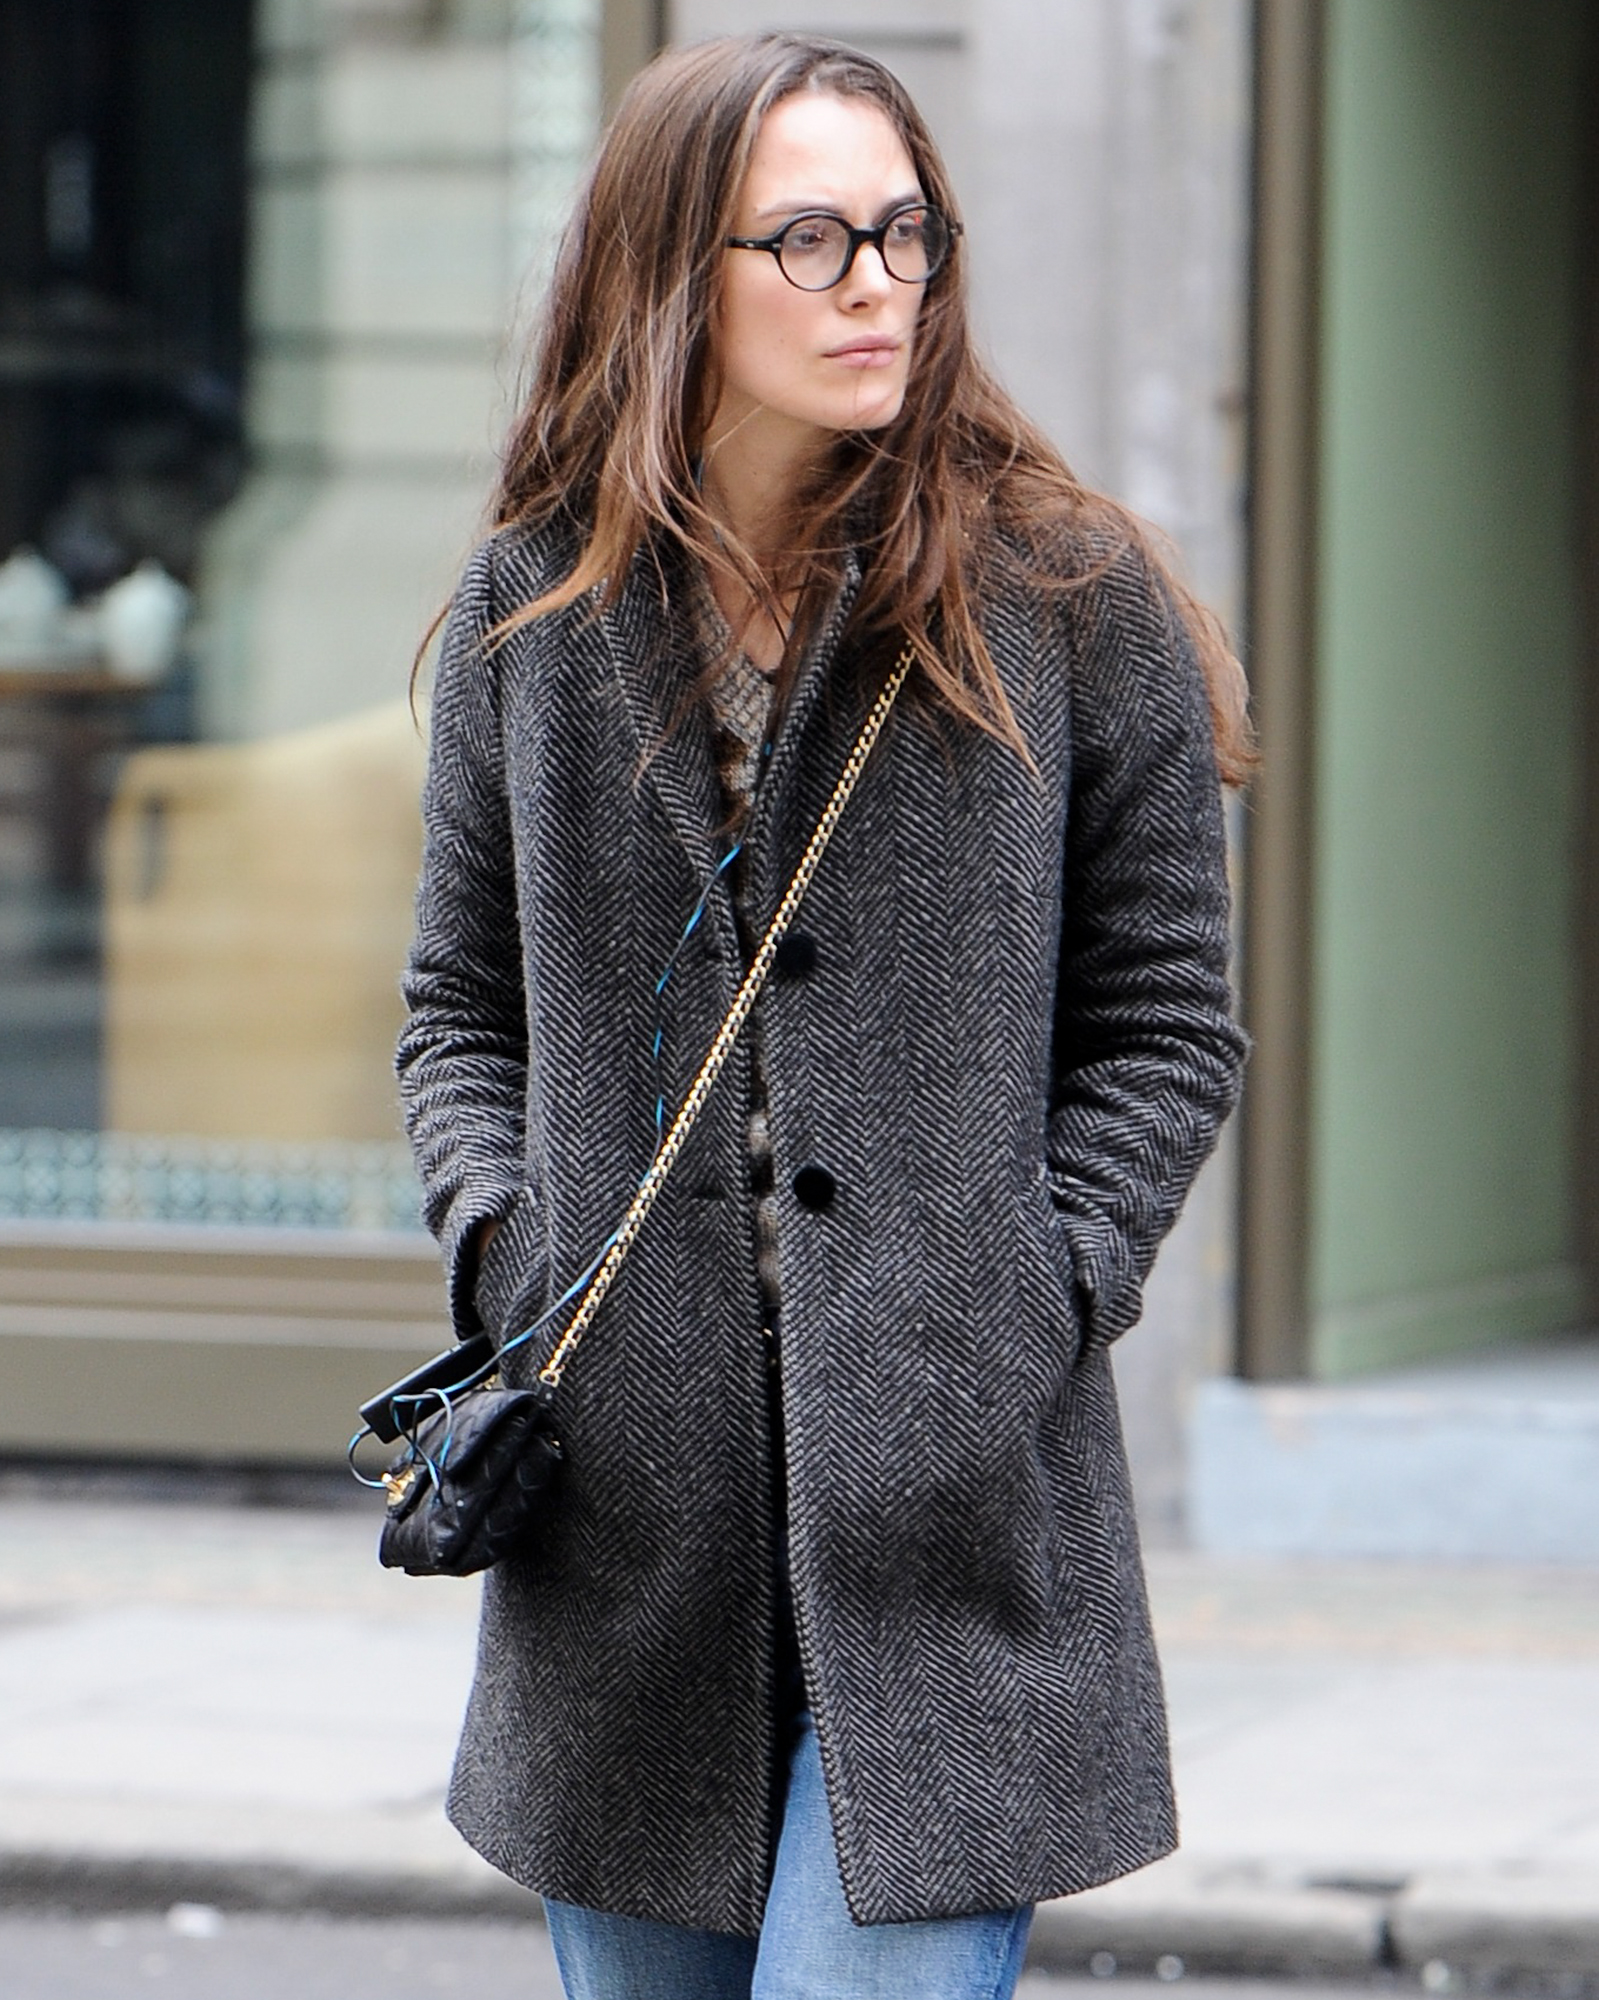 EXCLUSIVE: Keira Knightley pictured running errands in central London this afternoon